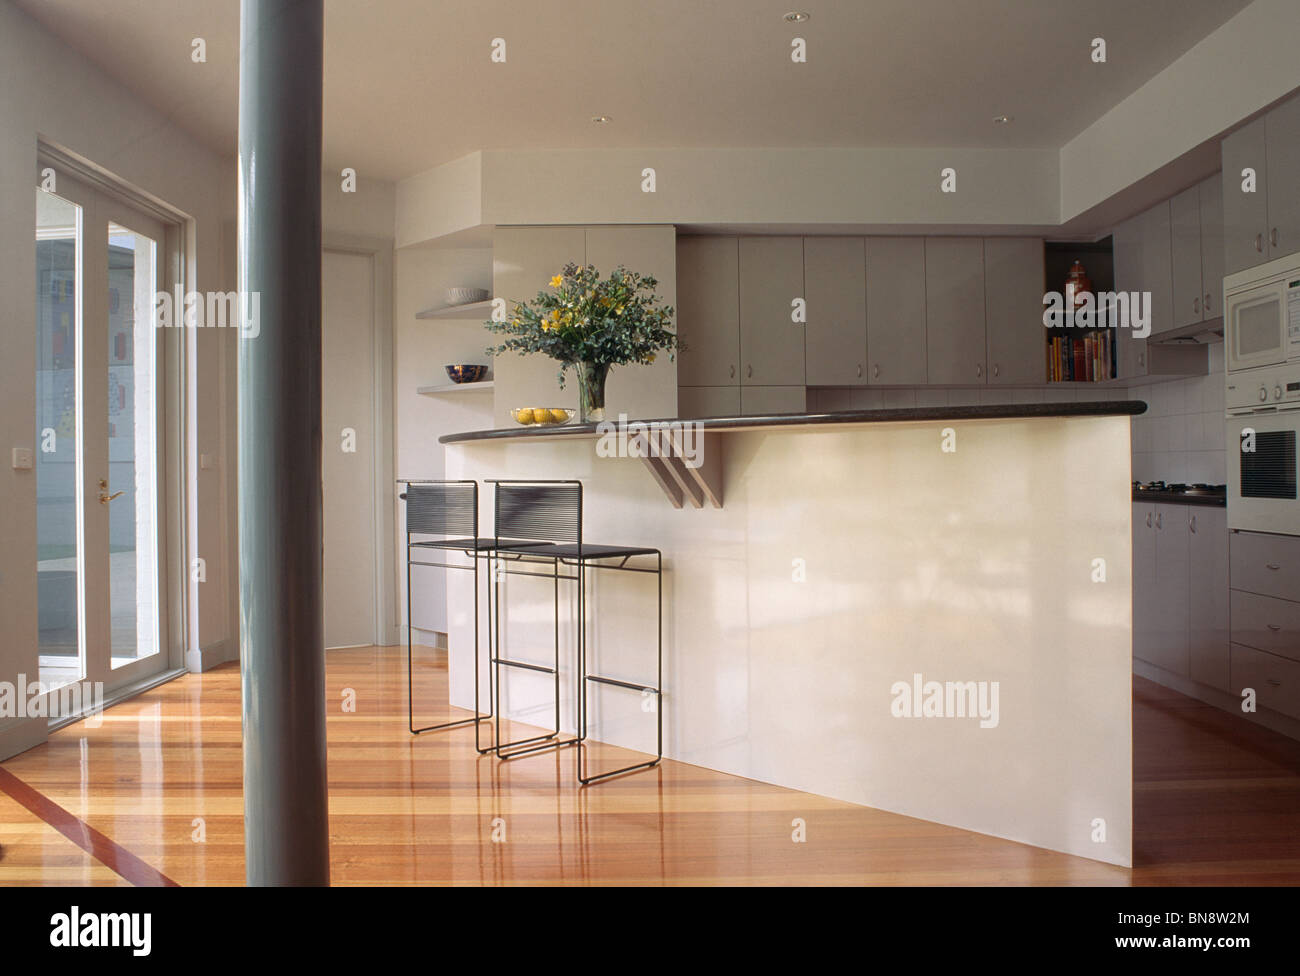 open plan kitchen breakfast bar. Narrow pillar and wooden flooring in modern open plan kitchen with stools  at breakfast bar